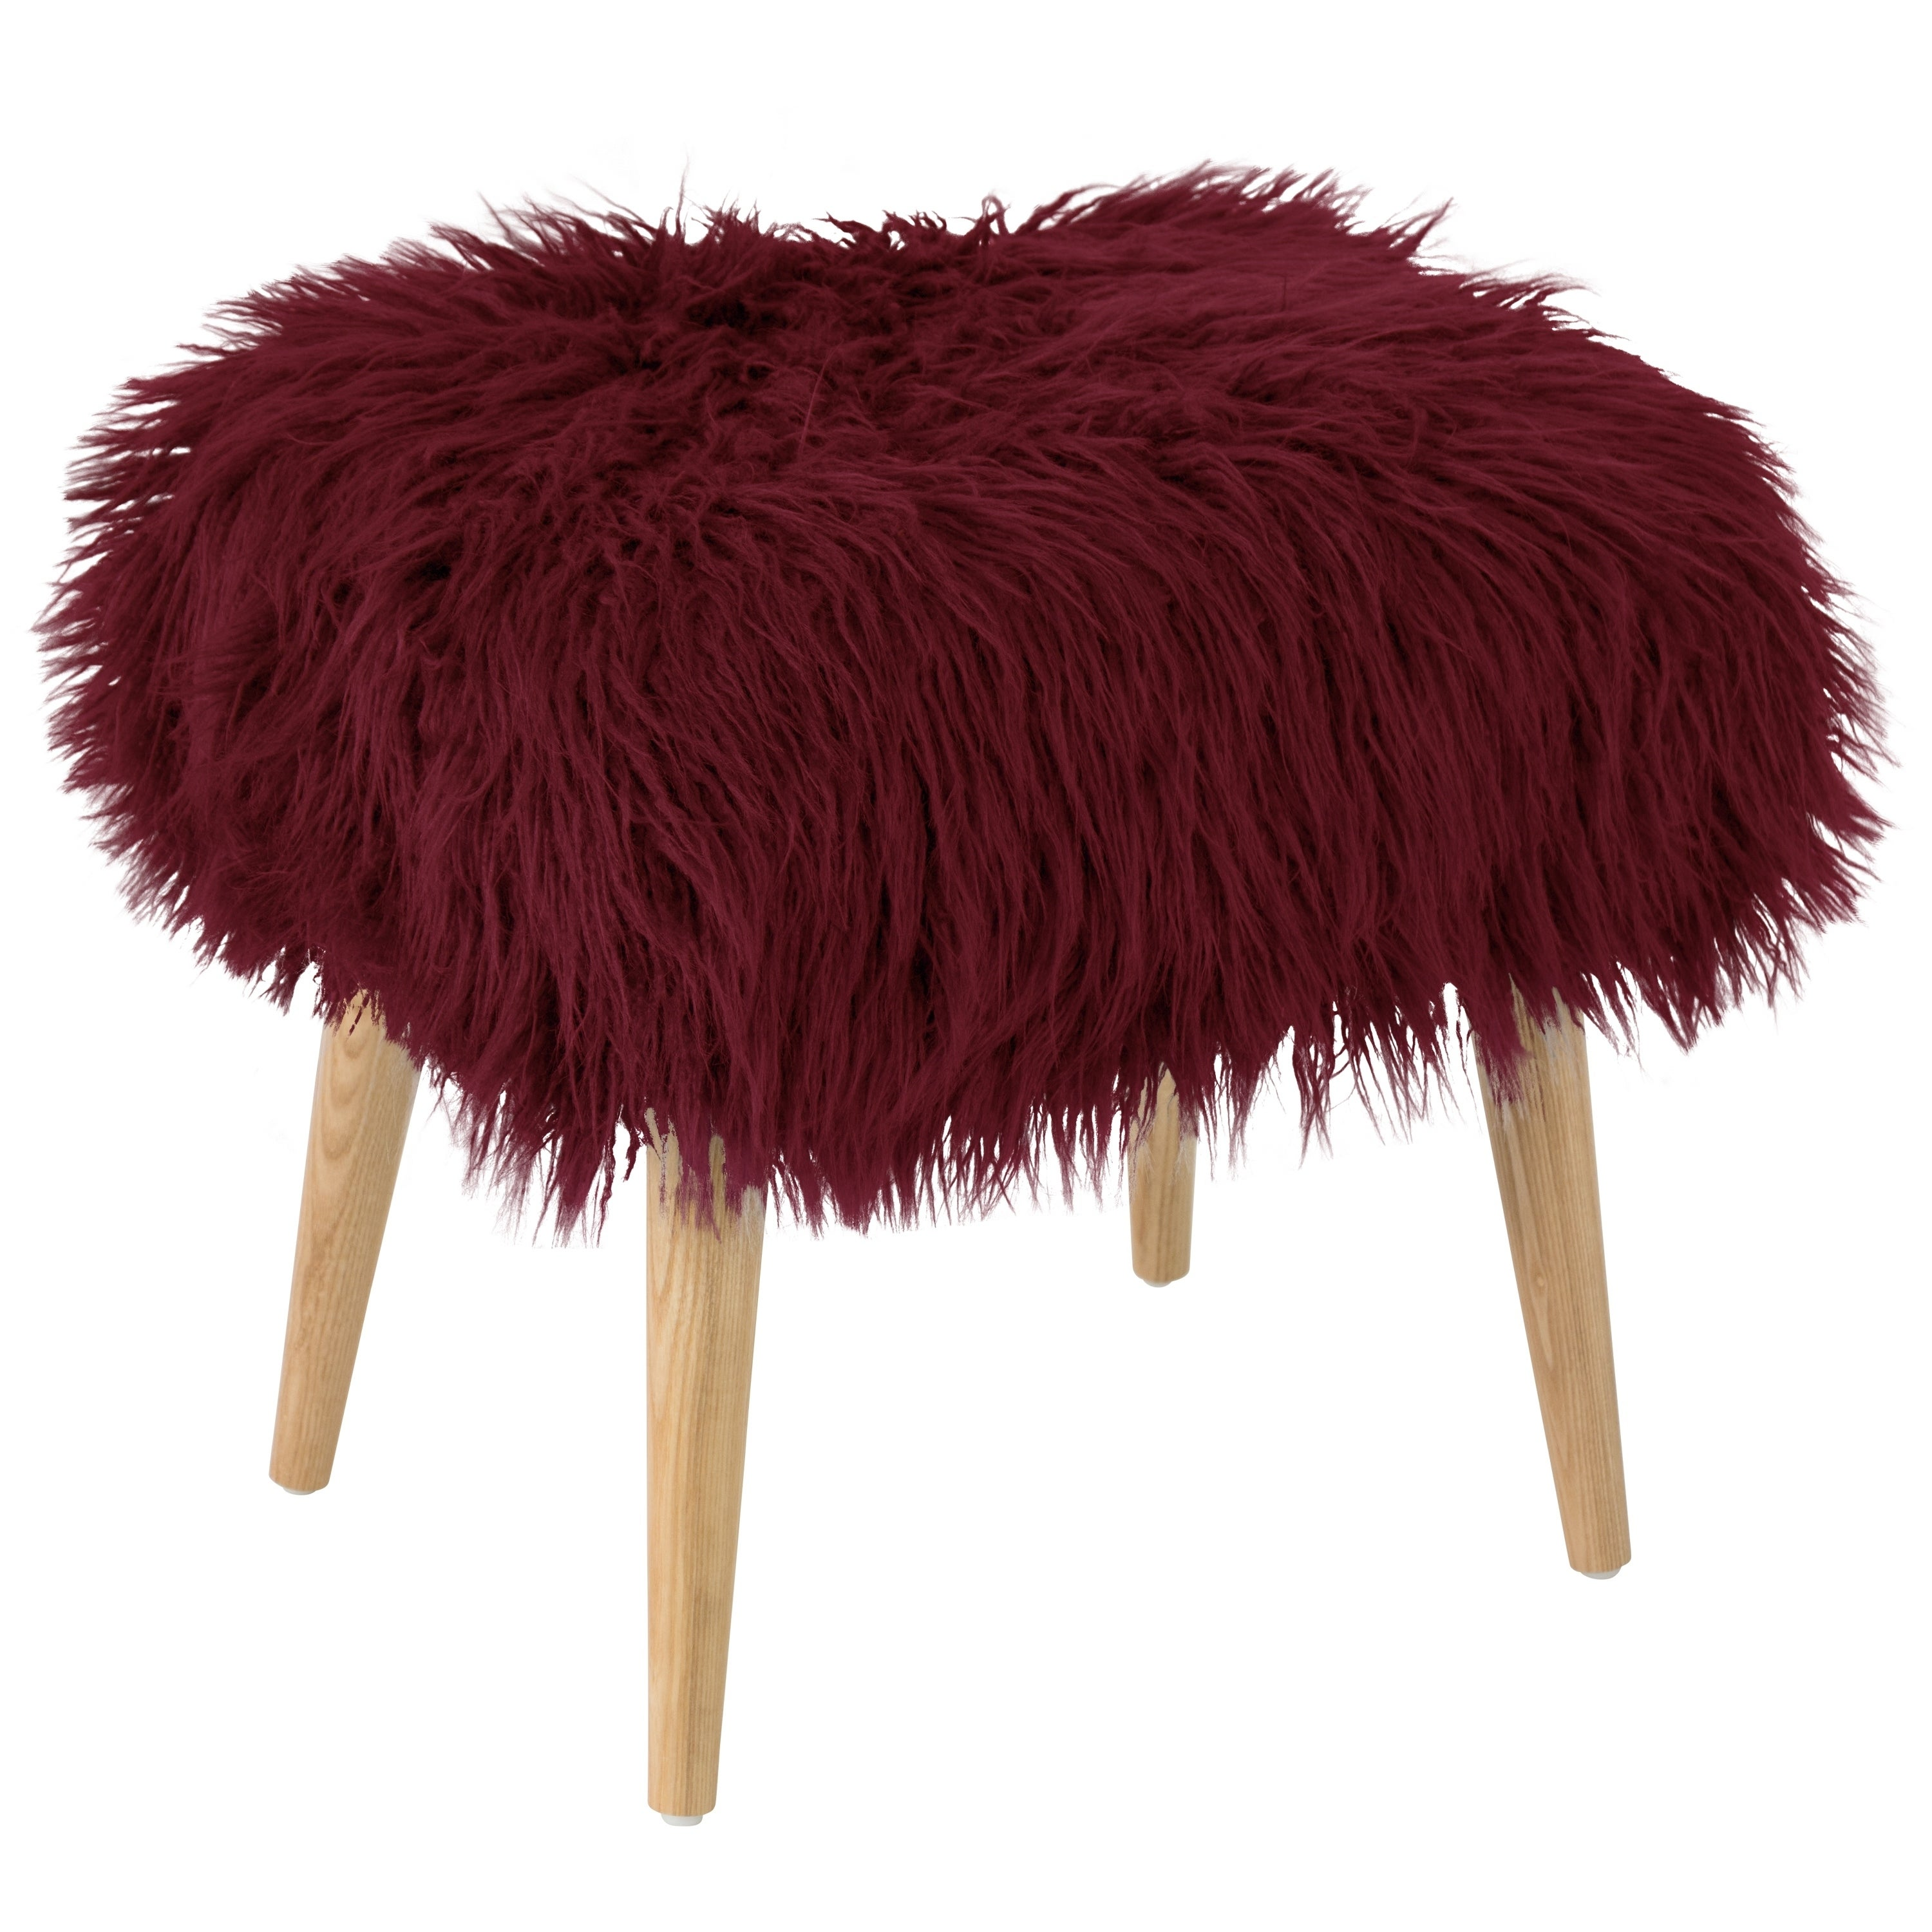 Excellent Skyline Furniture Ottoman In Fur Cjindustries Chair Design For Home Cjindustriesco